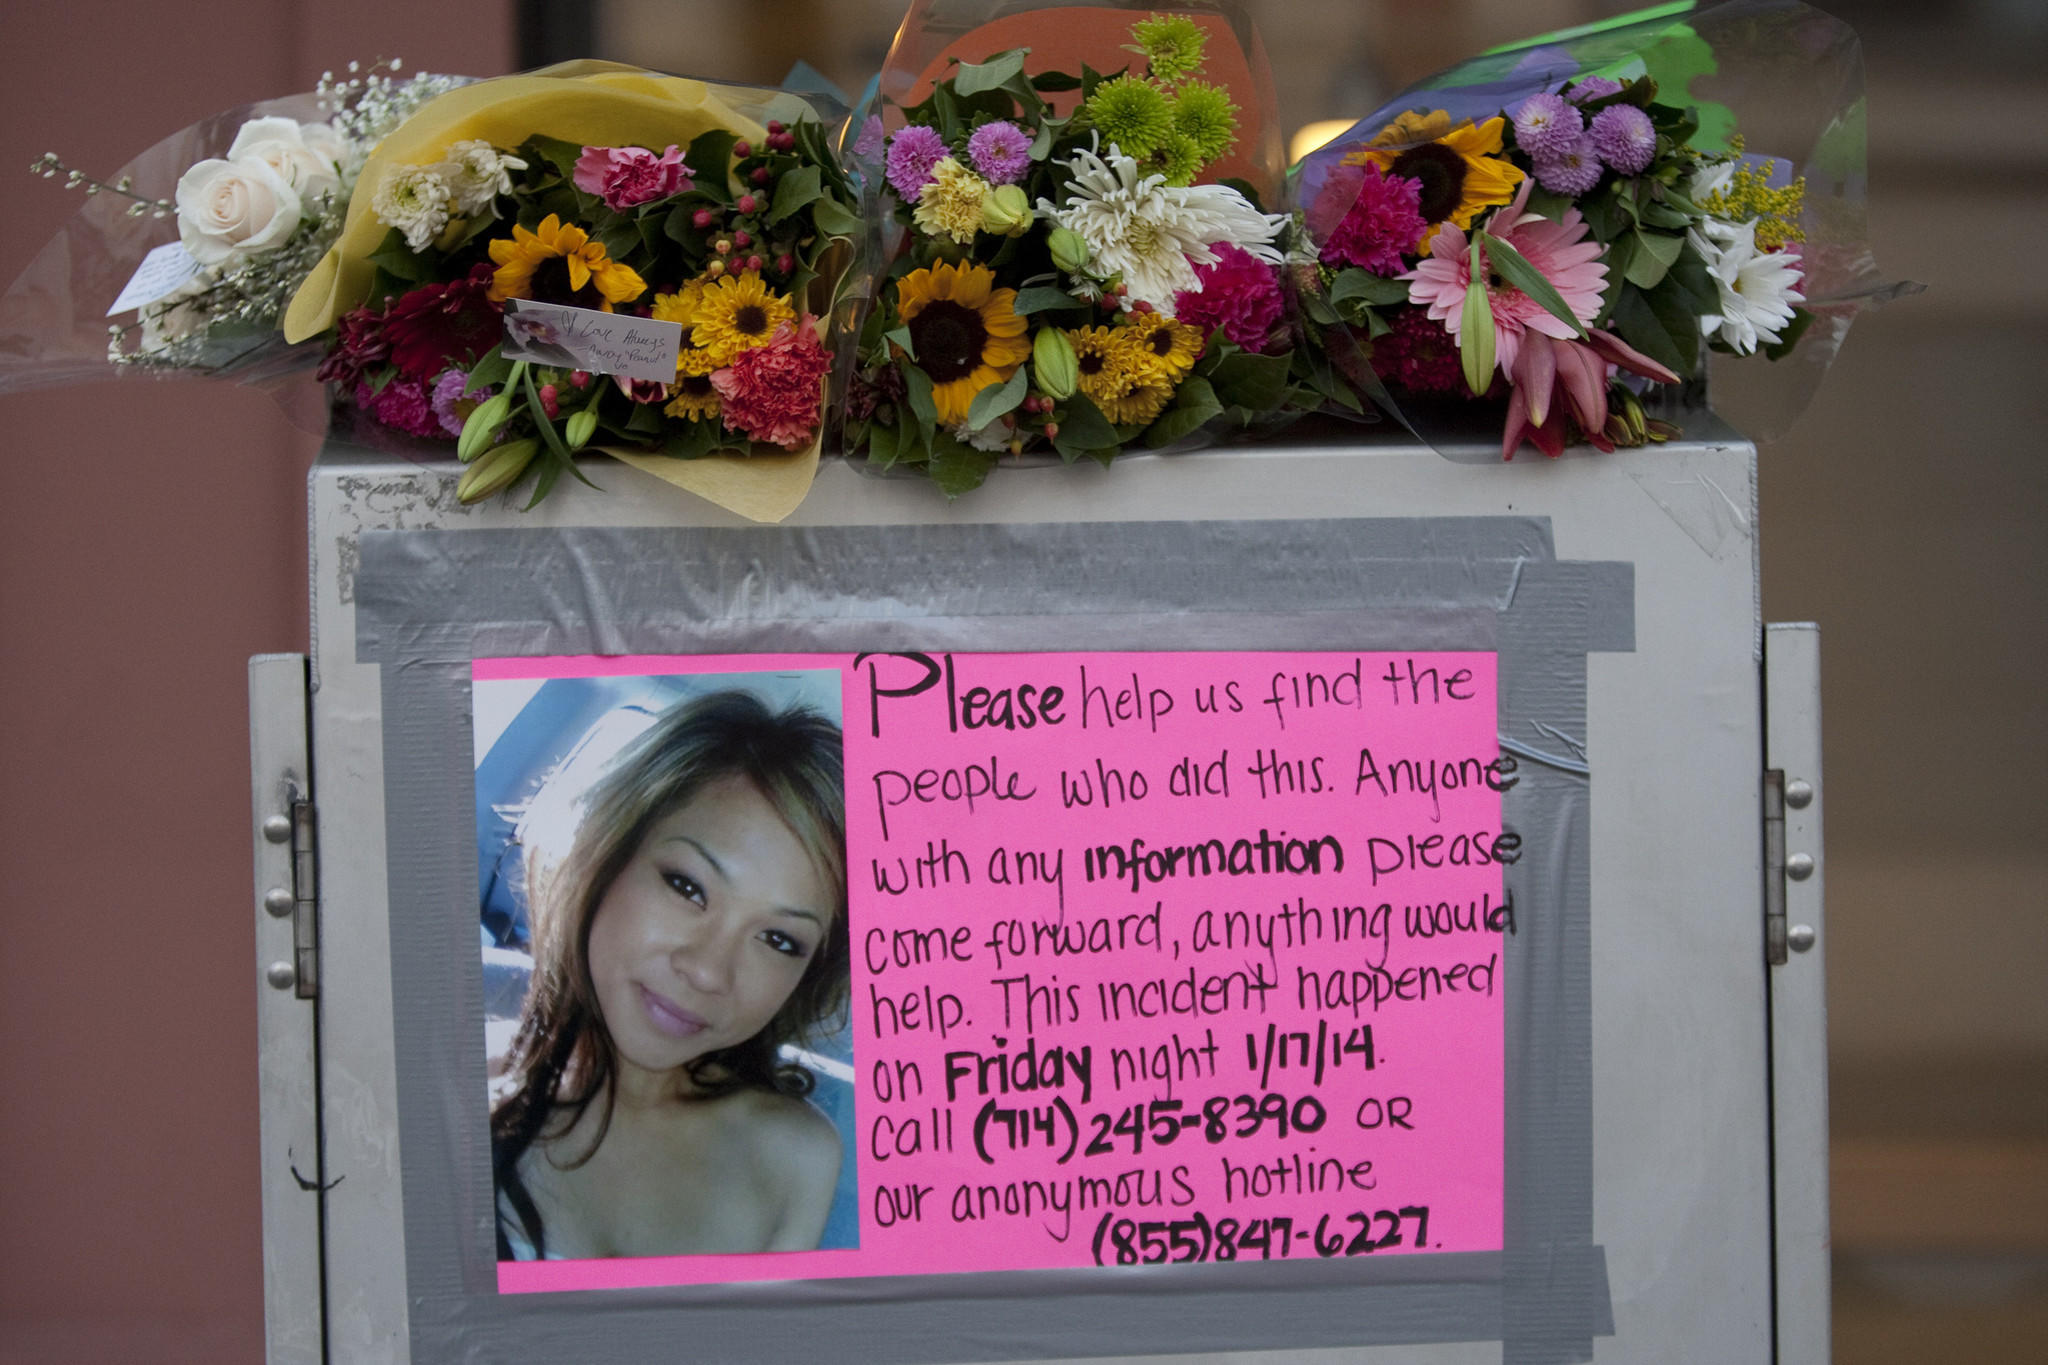 A poster seeking information is displayed at a memorial for Kim Pham, the 23-year-old woman who died after being attacked by a group of people outside a Santa Ana nightclub.